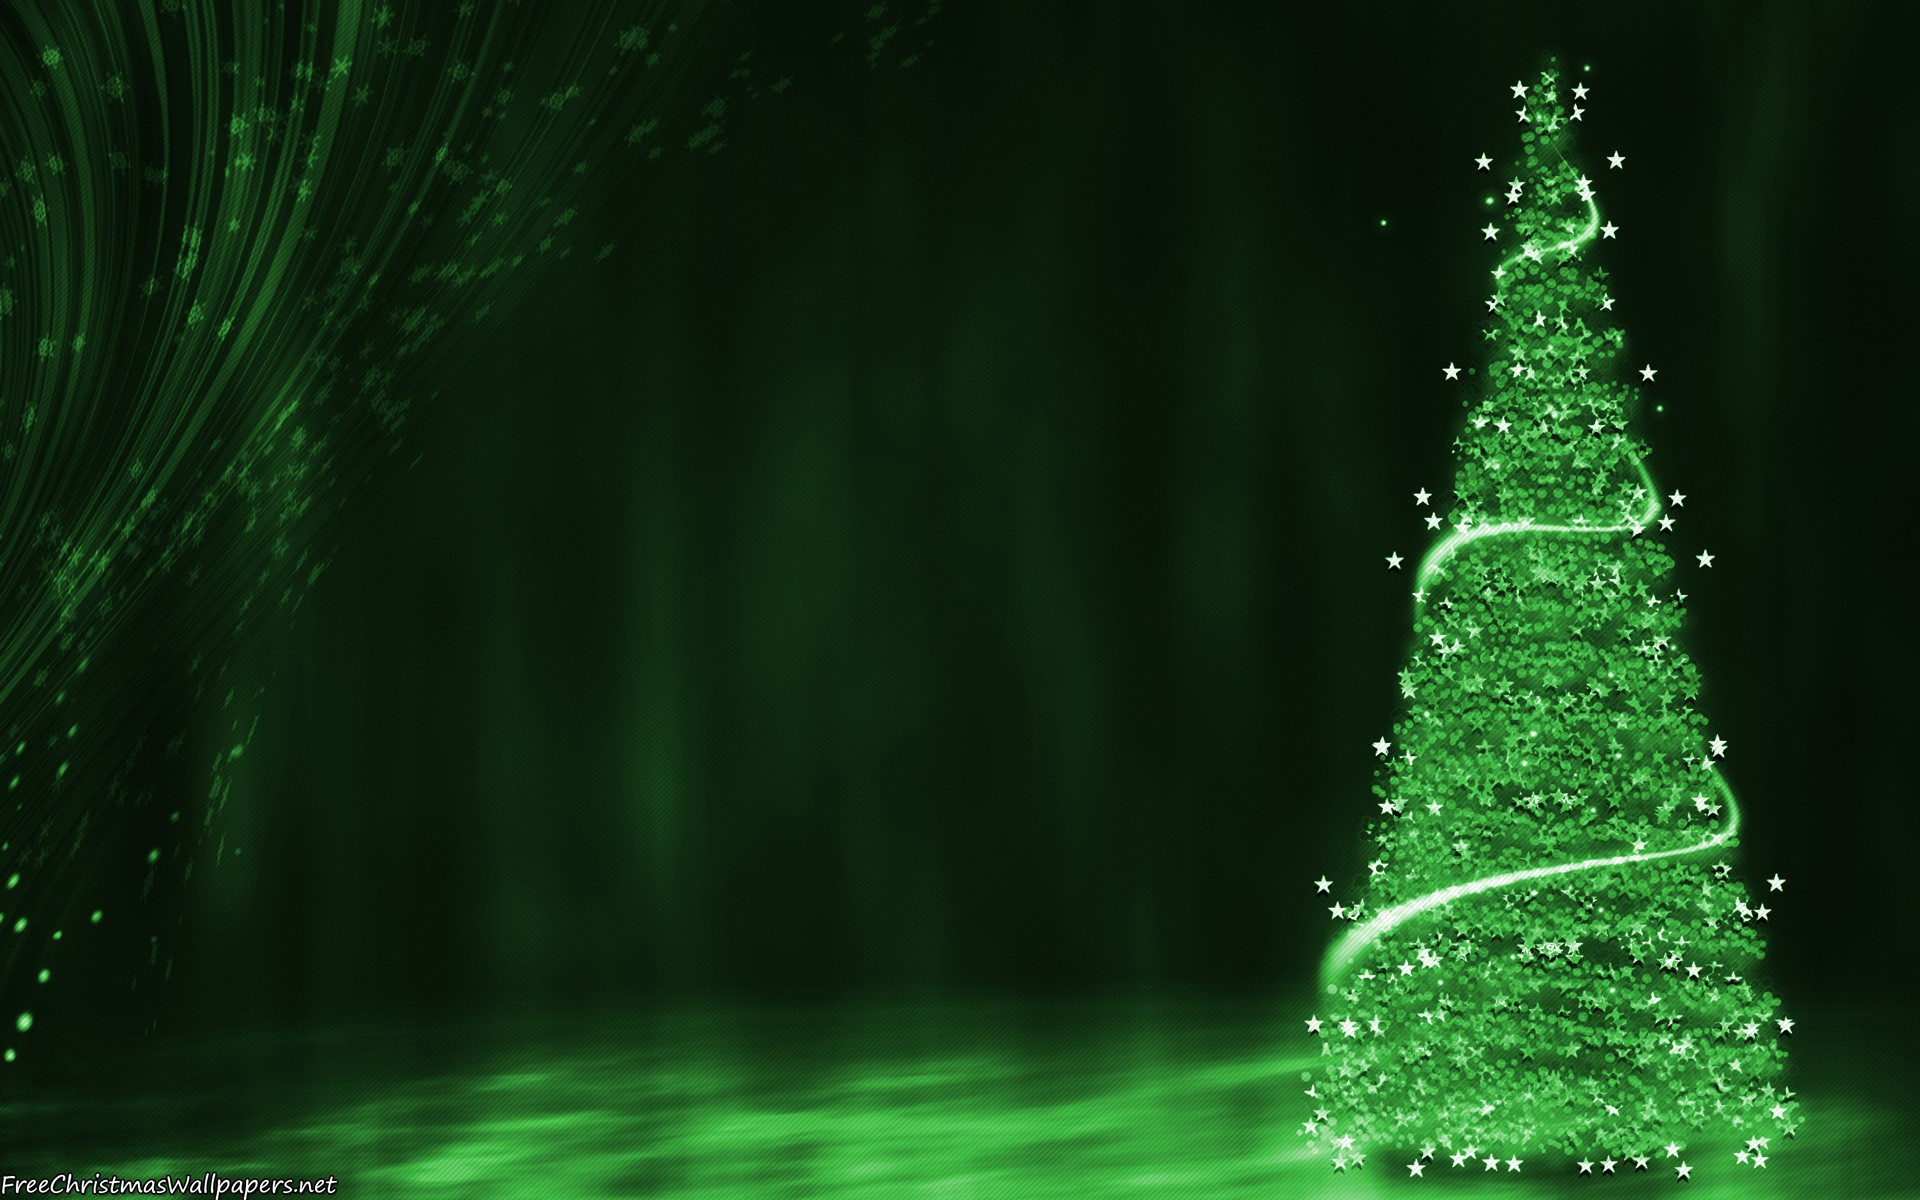 How to celebrate green Christmas